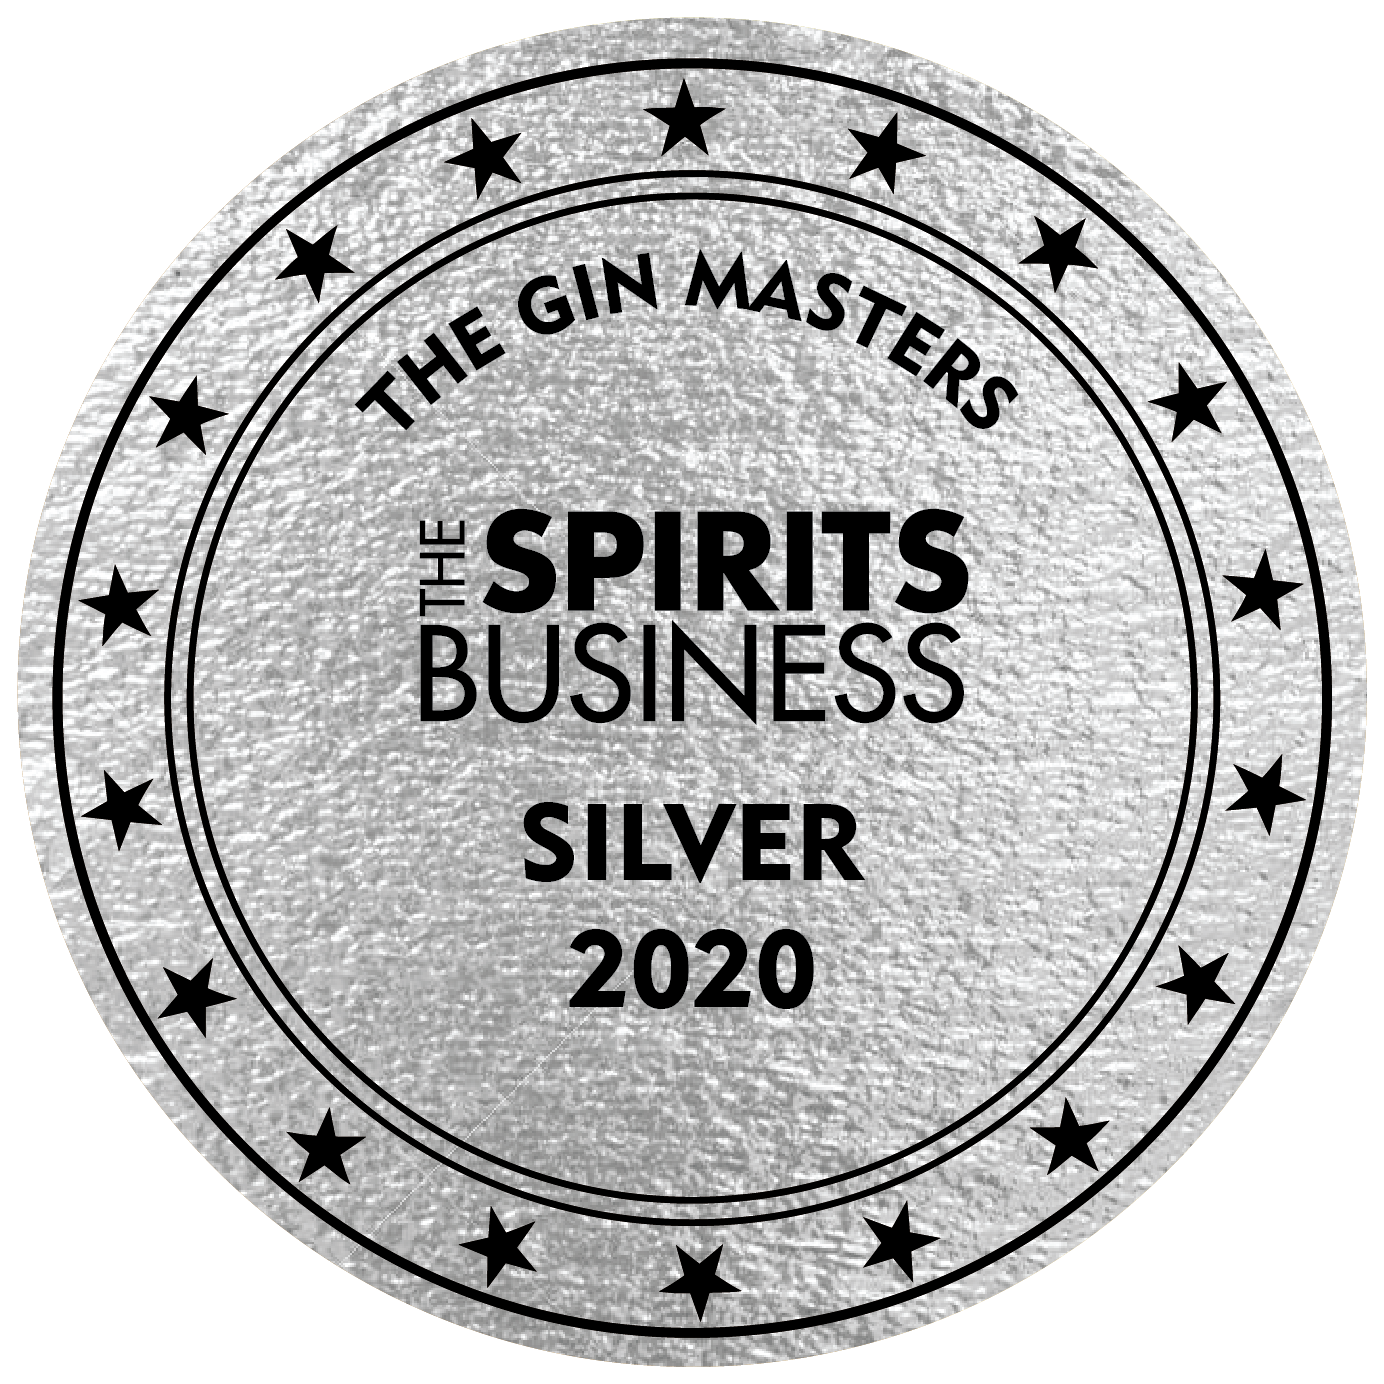 An Silver award won by the Stillery amsterdam which reads The Spirit Business Silver 2020